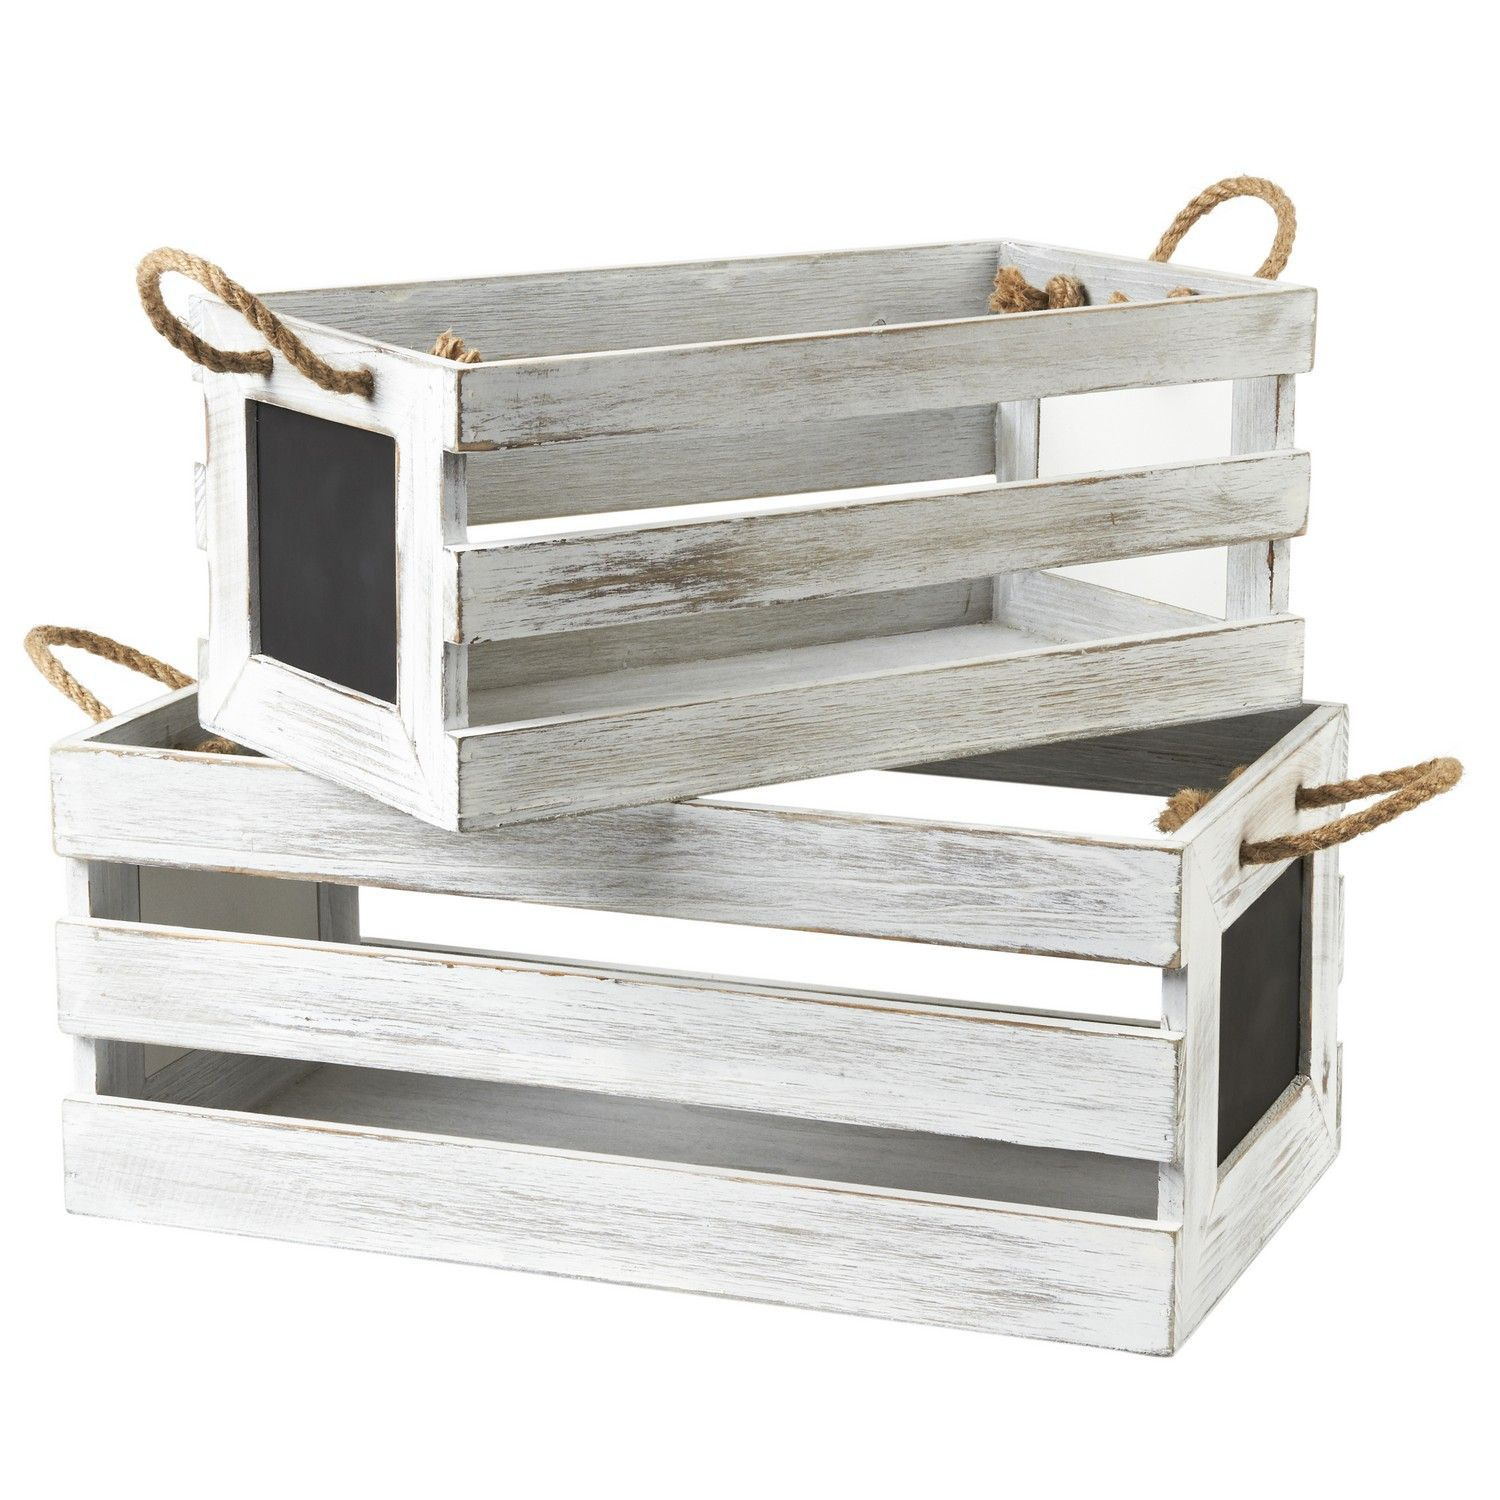 Perfect for Floral Arrangements Gardening Wedding Vintage Country Chic Rustic Distressed Style Set of 3, Light Green SLPR Decorative Storage Wooden Crates